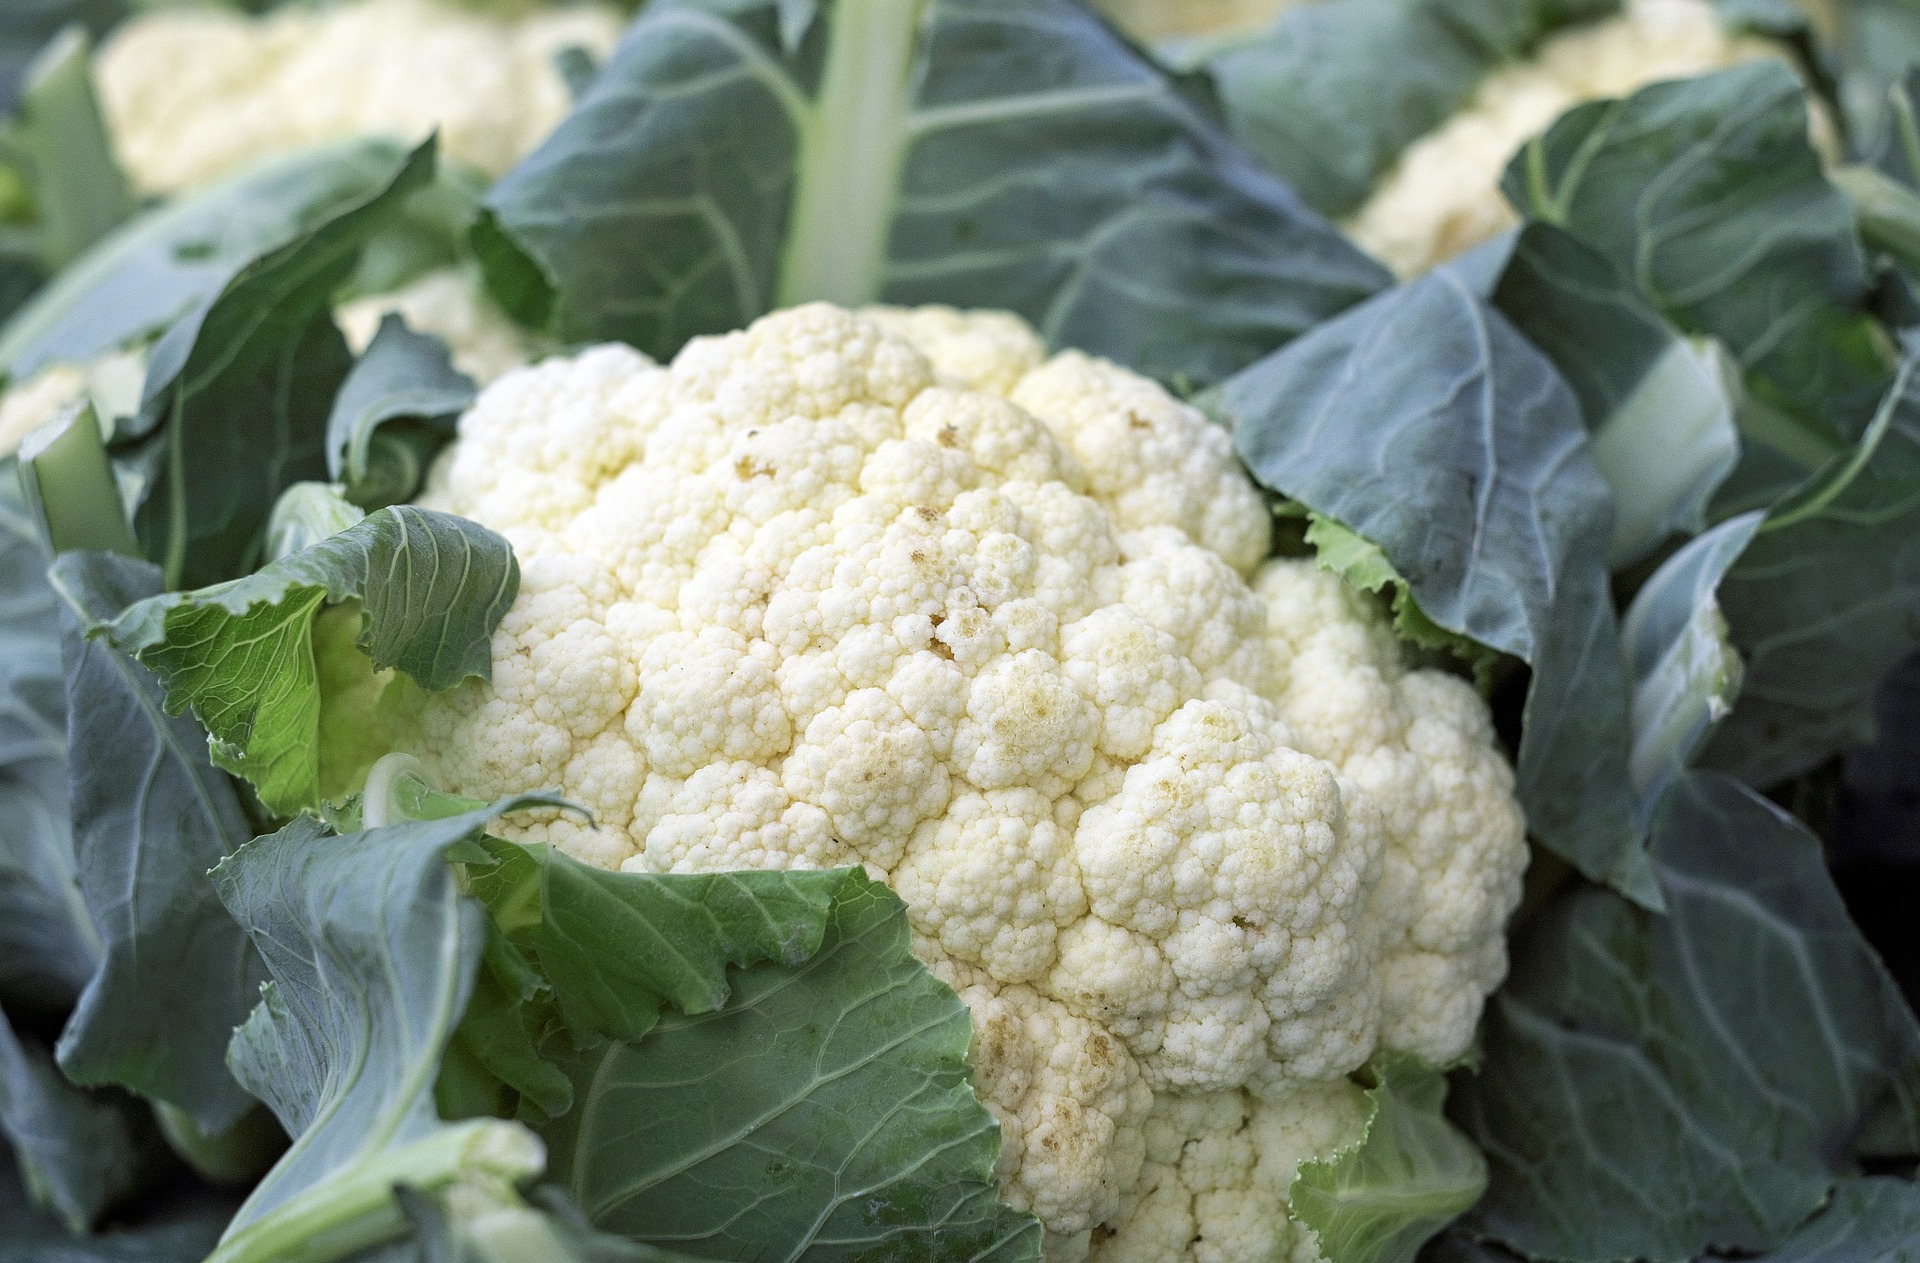 cauliflower-1465732_1920_1545263498531.jpg